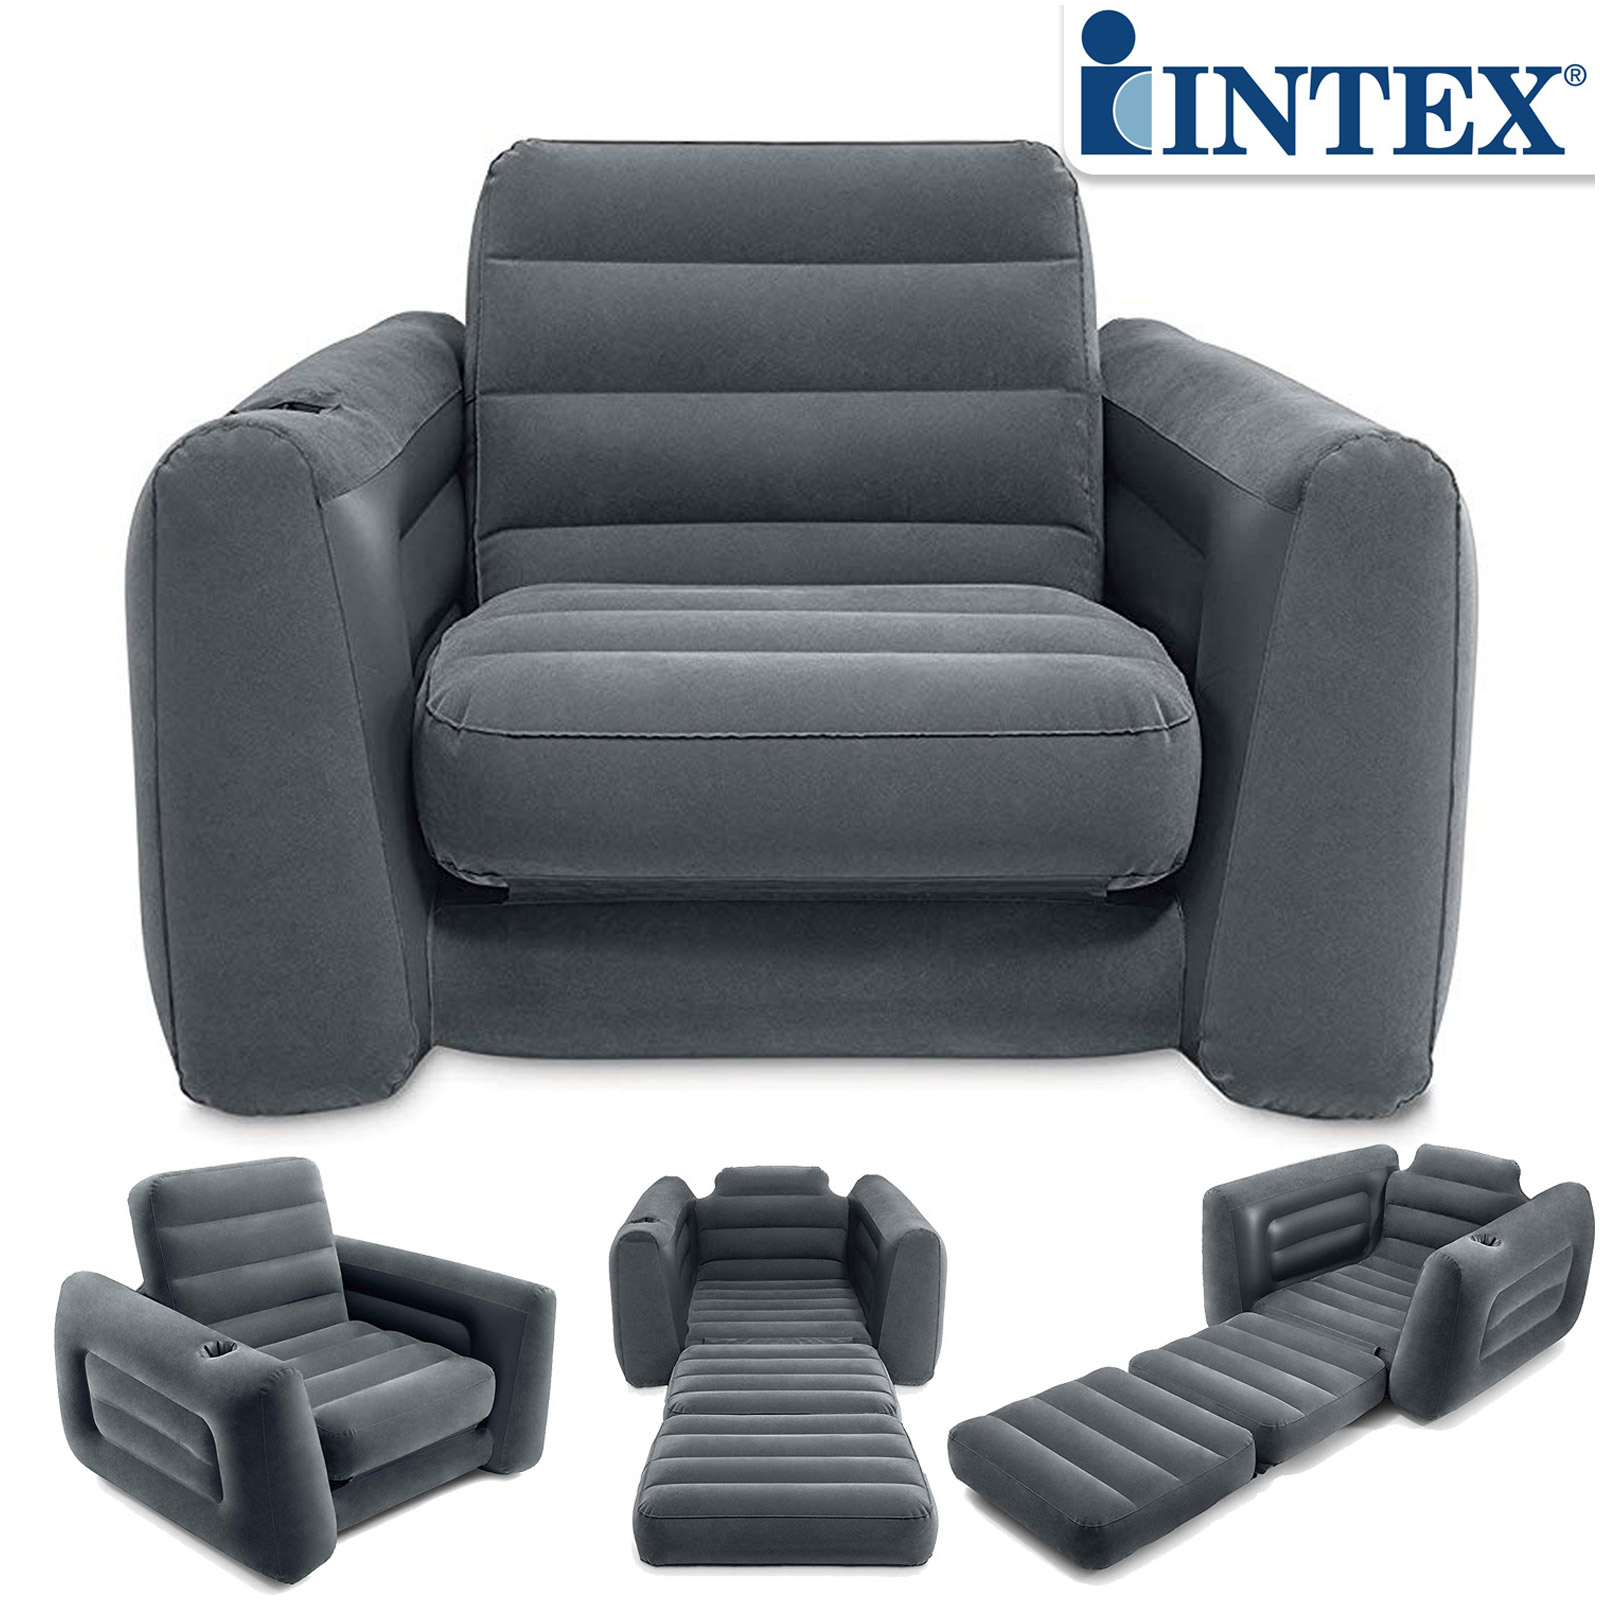 Intex Sessel Pull-Out Chair 117x224x66 cm Schlafsessel Relaxsessel